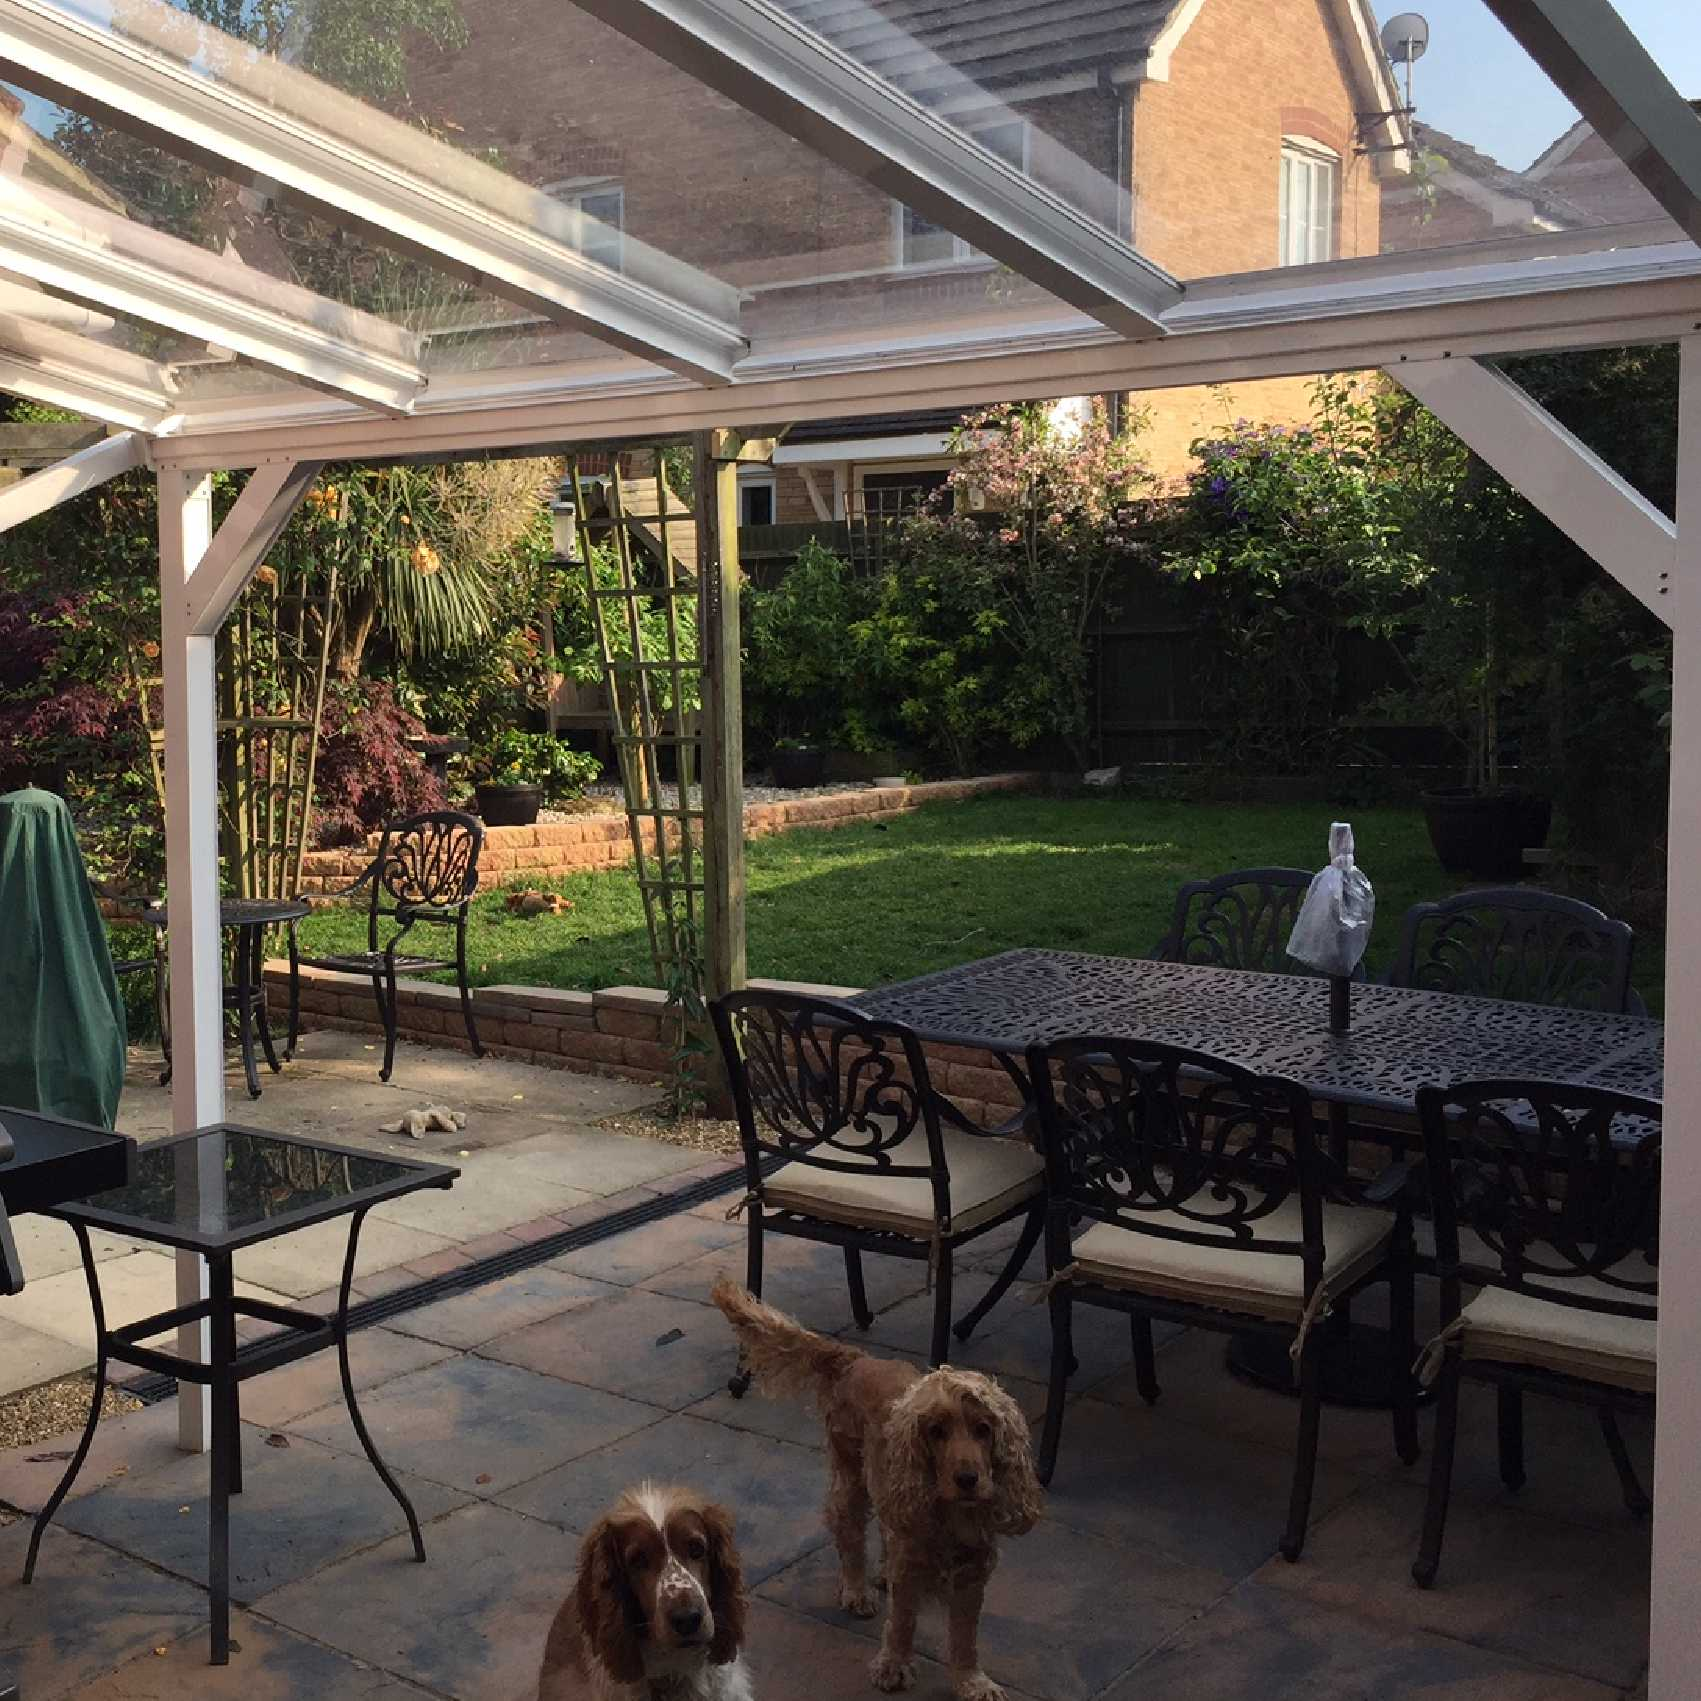 Affordable Omega Smart White Lean-To Canopy with 6mm Glass Clear Plate Polycarbonate Glazing - 5.6m (W) x 1.5m (P), (3) Supporting Posts